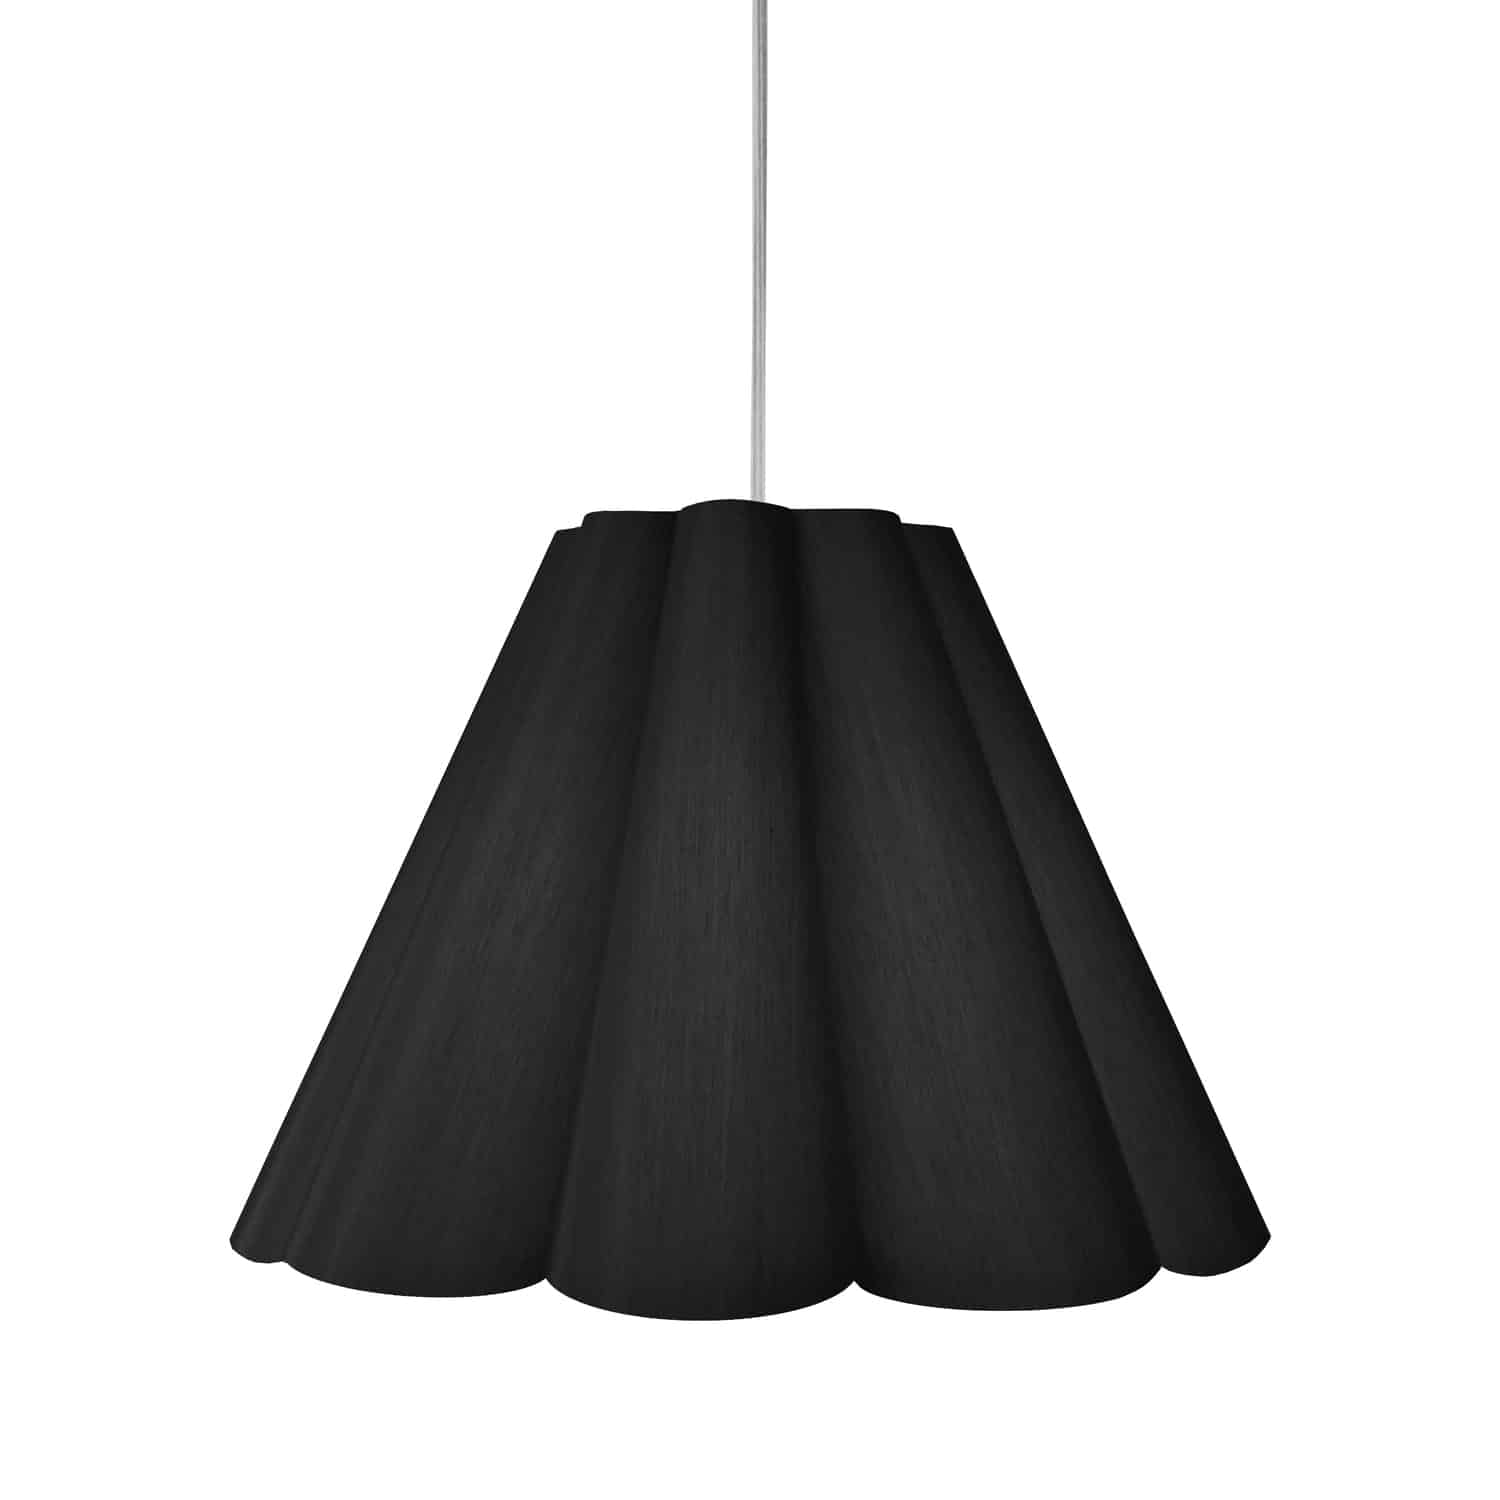 4 Light Kendra Pendant JTone Black, Medium Polished Chrome